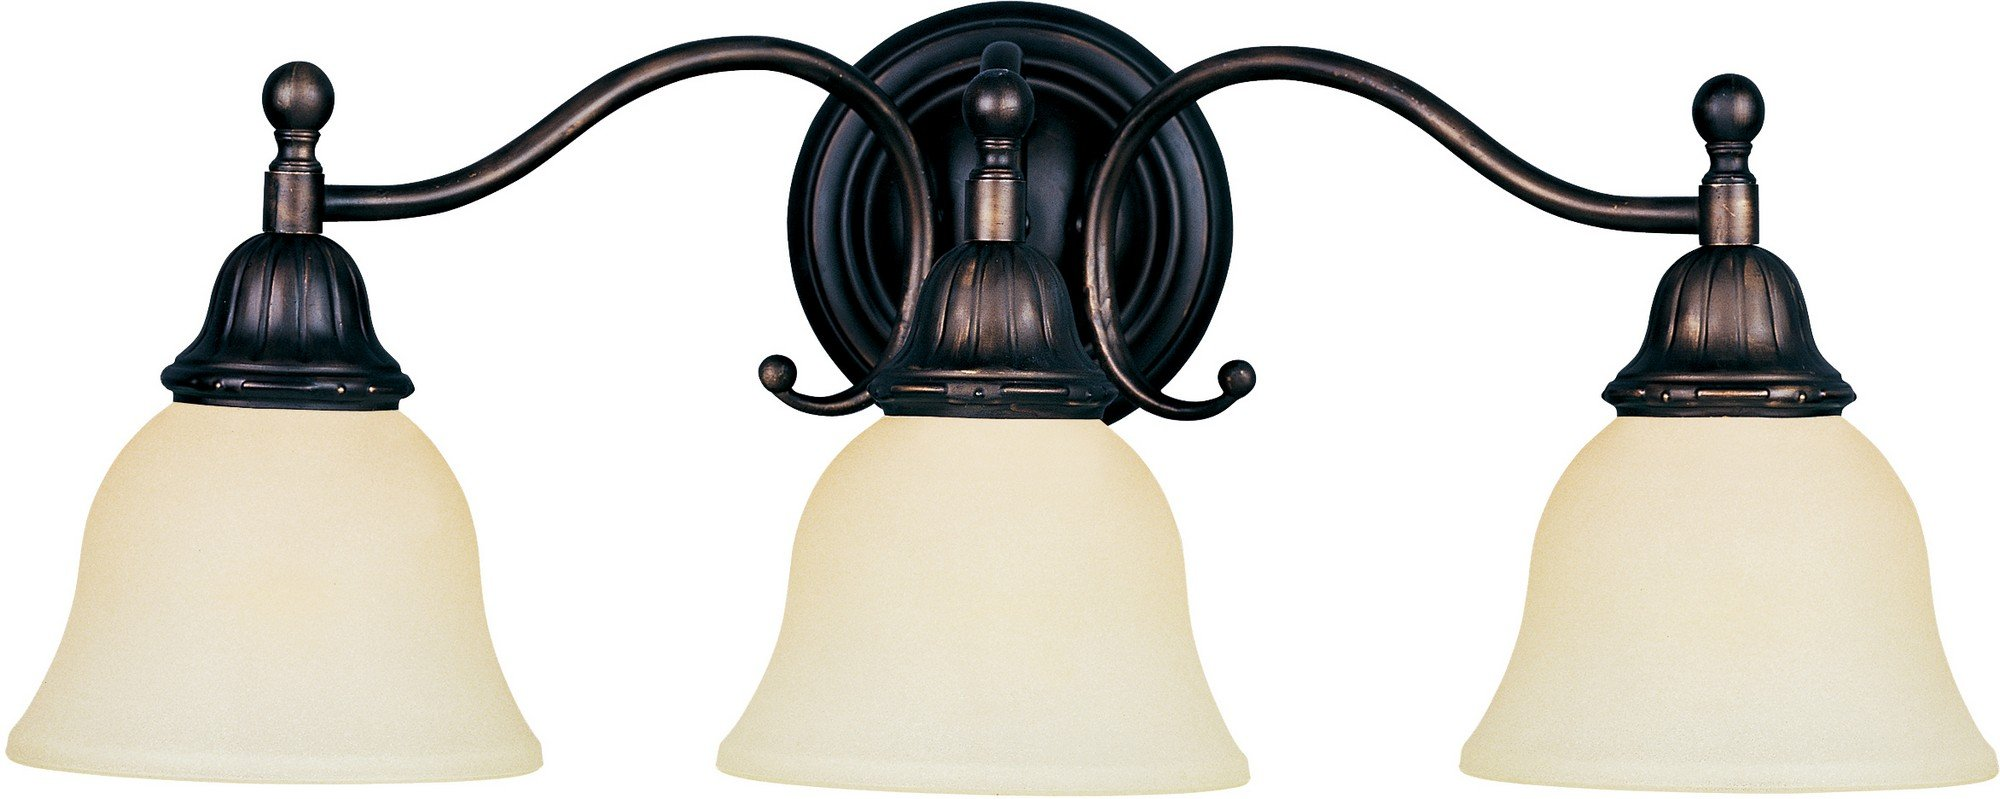 Maxim 11058SVOI Soho 3-Light Bath Vanity, Oil Rubbed Bronze Finish, Soft Vanilla Glass, MB Incandescent Incandescent Bulb , 40W Max., Dry Safety Rating, 2900K Color Temp, Standard Dimmable, Metal Shade Material, 4800 Rated Lumens